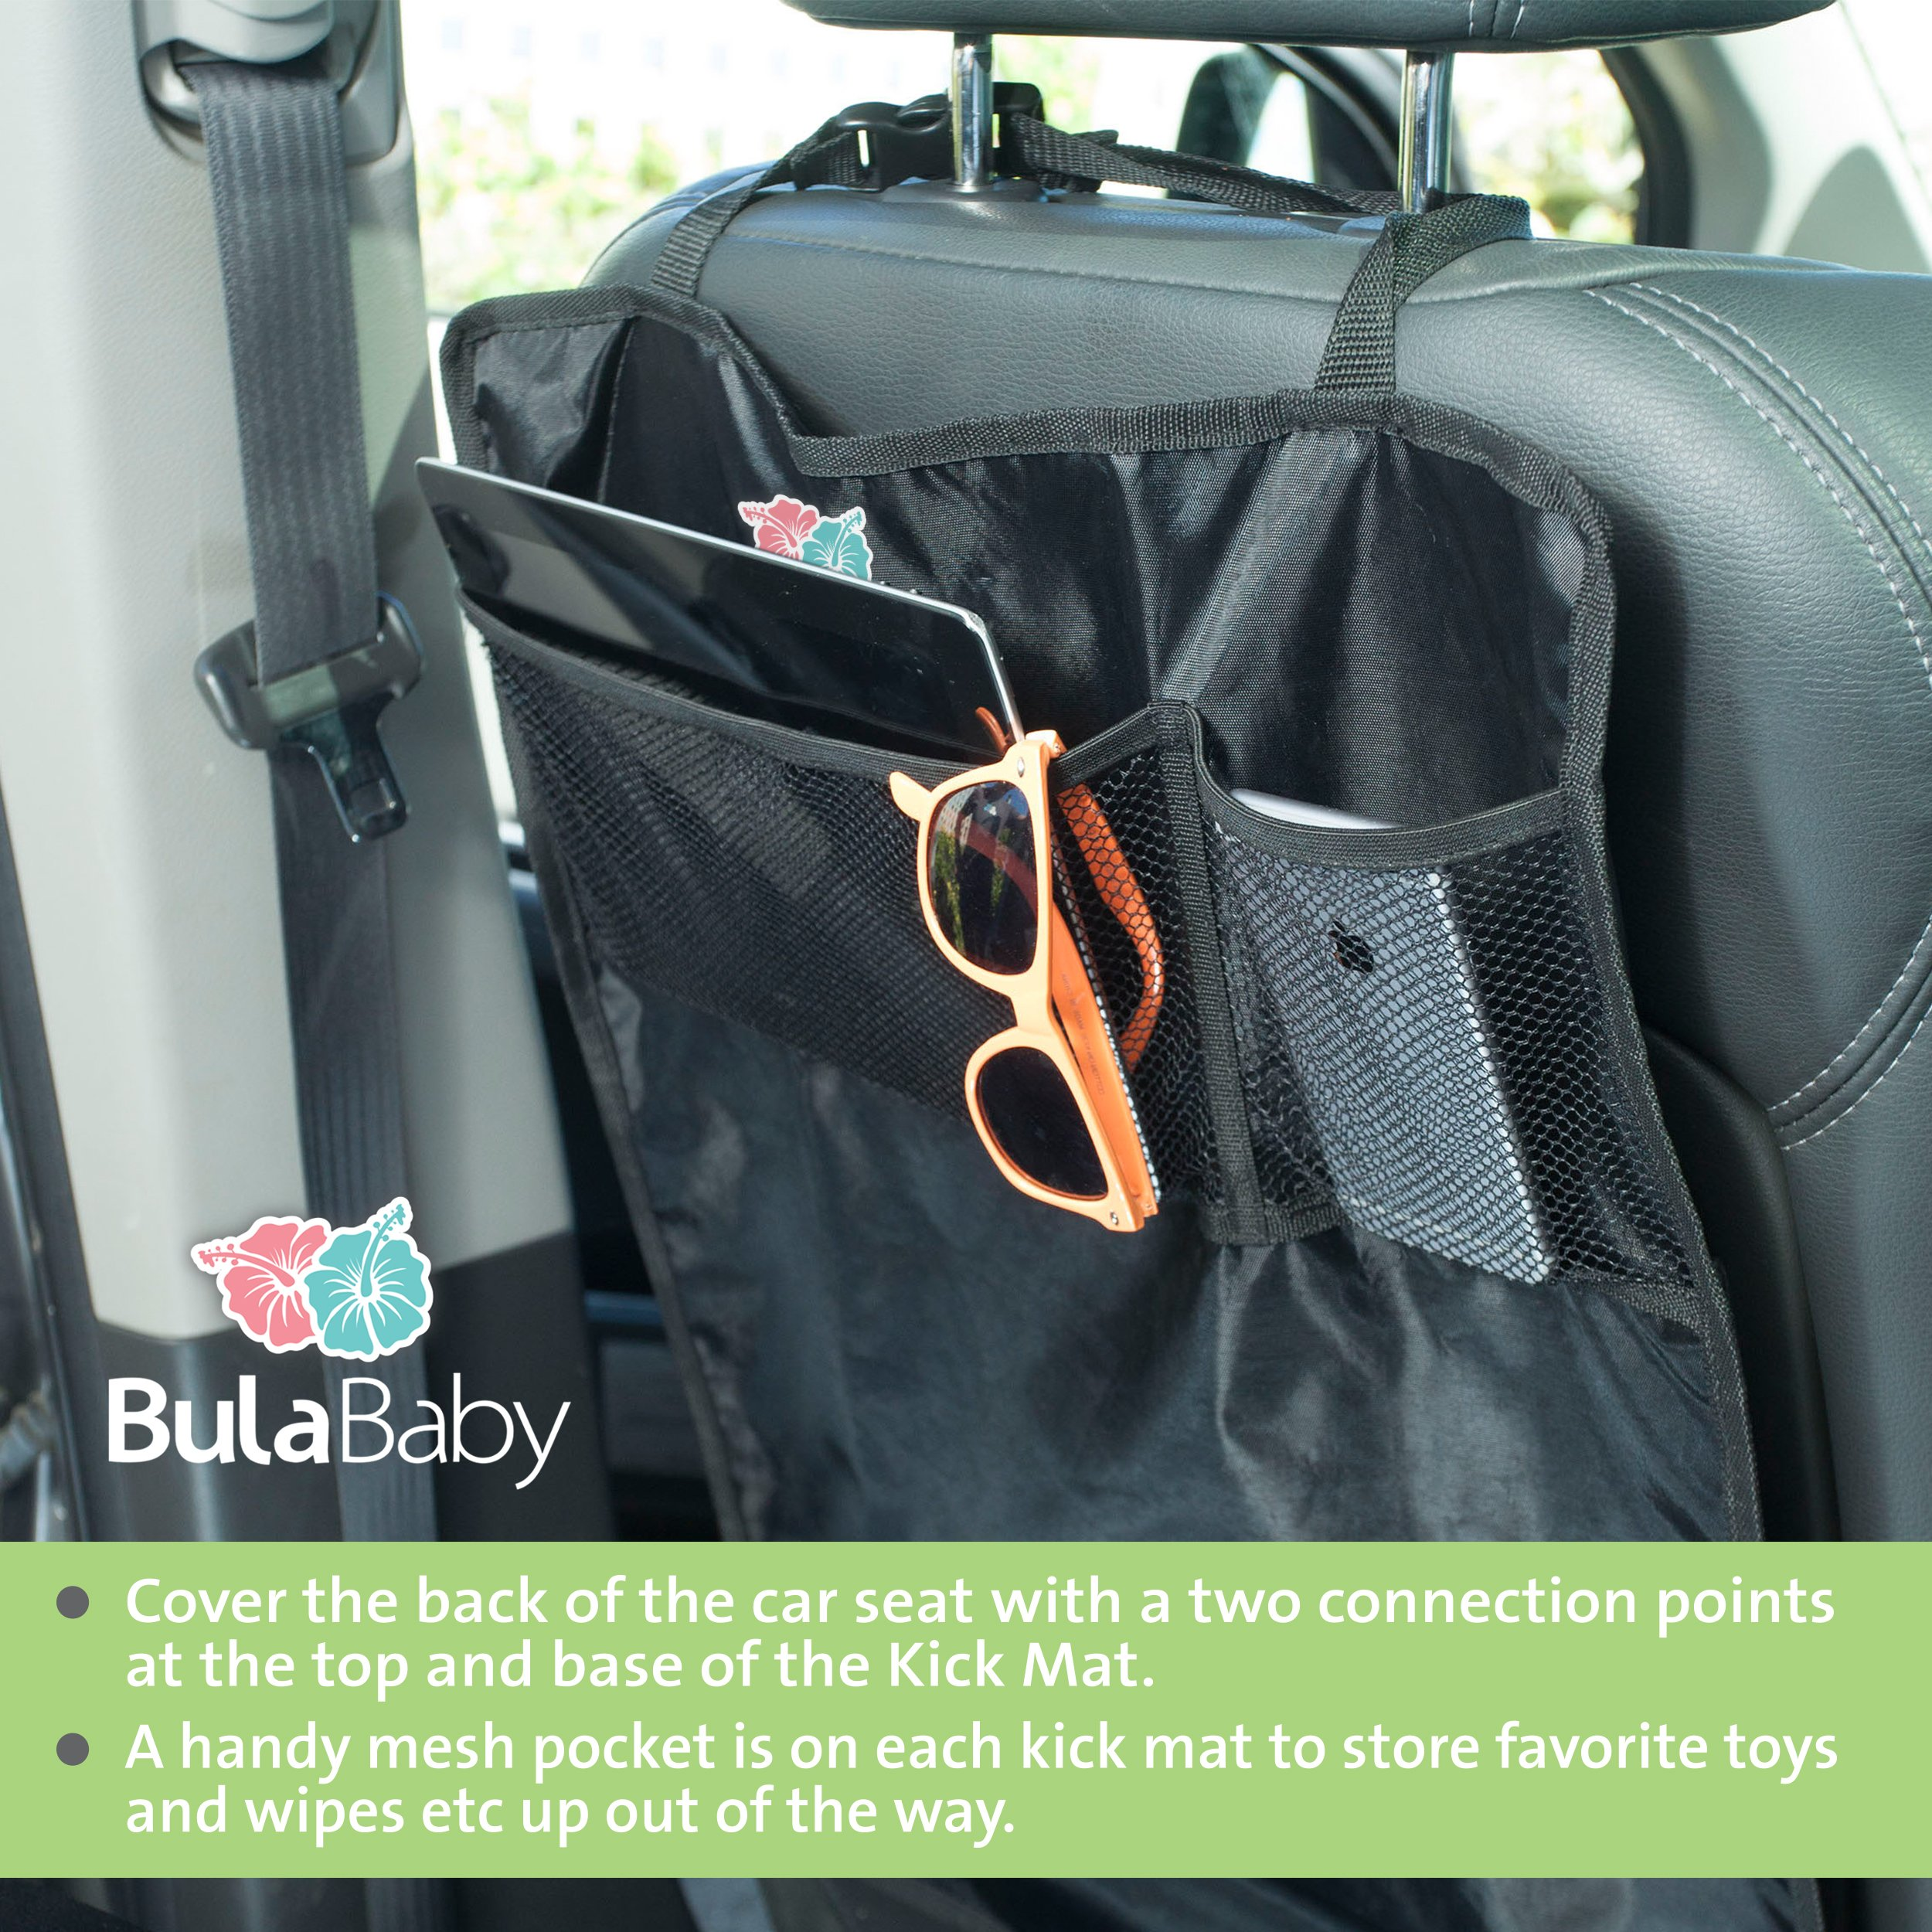 Bula Baby - Back of Seat Protector - 2 Count - Complete With Pocket Organizer by Bula Baby (Image #7)